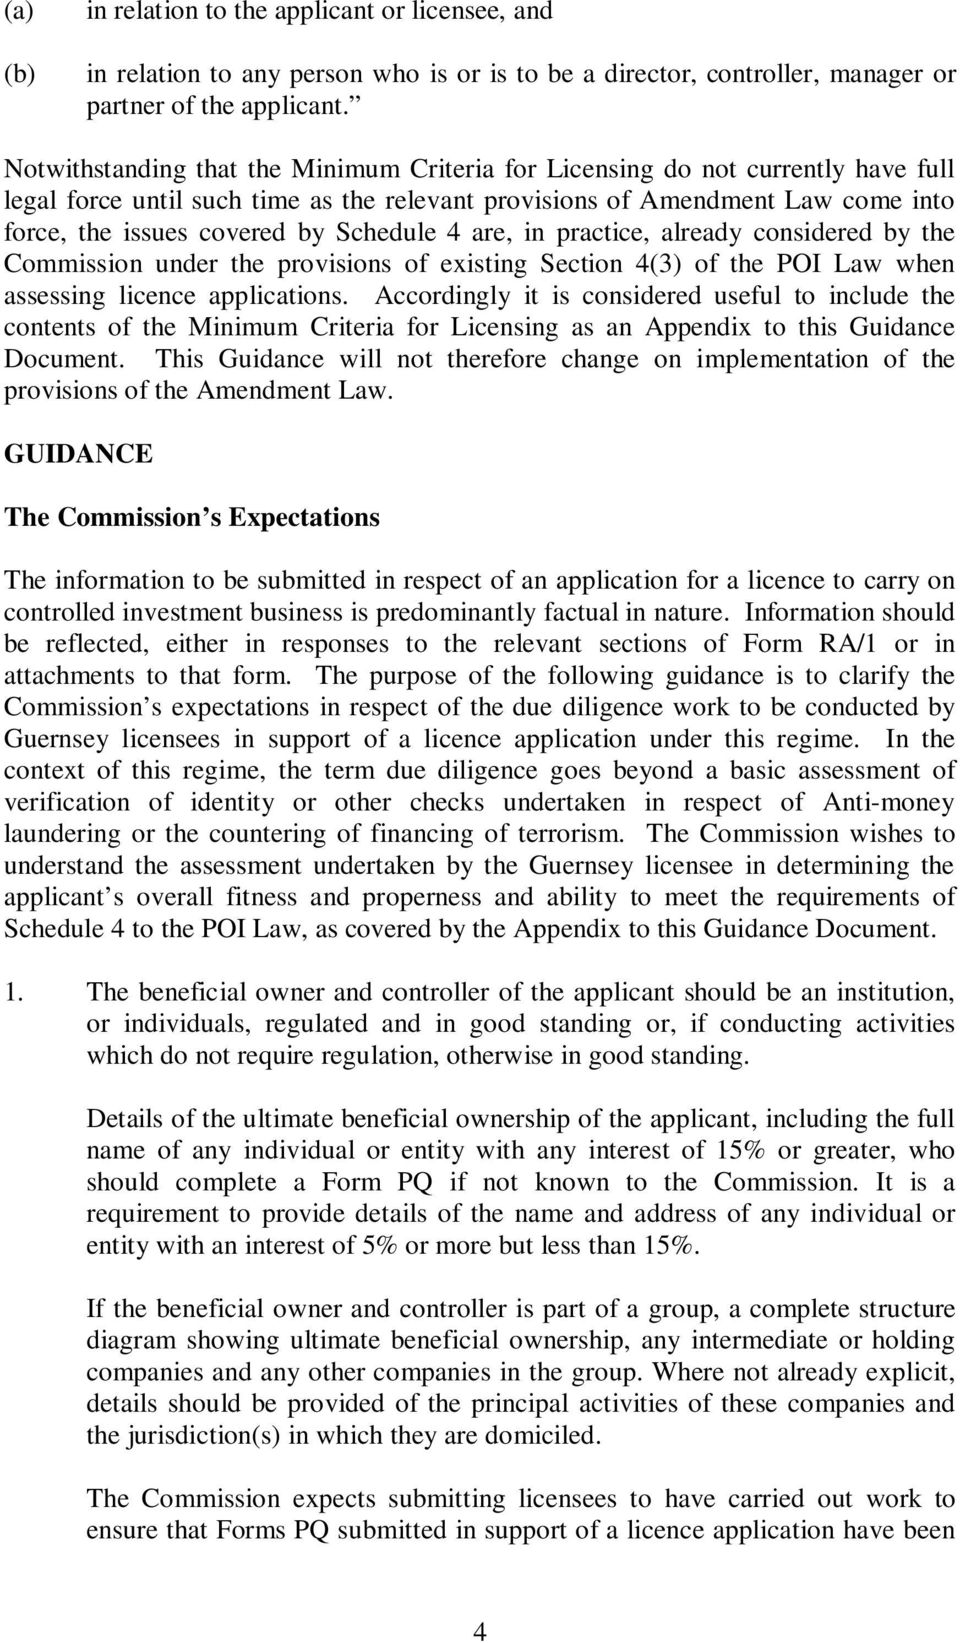 Schedule 4 are, in practice, already considered by the Commission under the provisions of existing Section 4(3) of the POI Law when assessing licence applications.